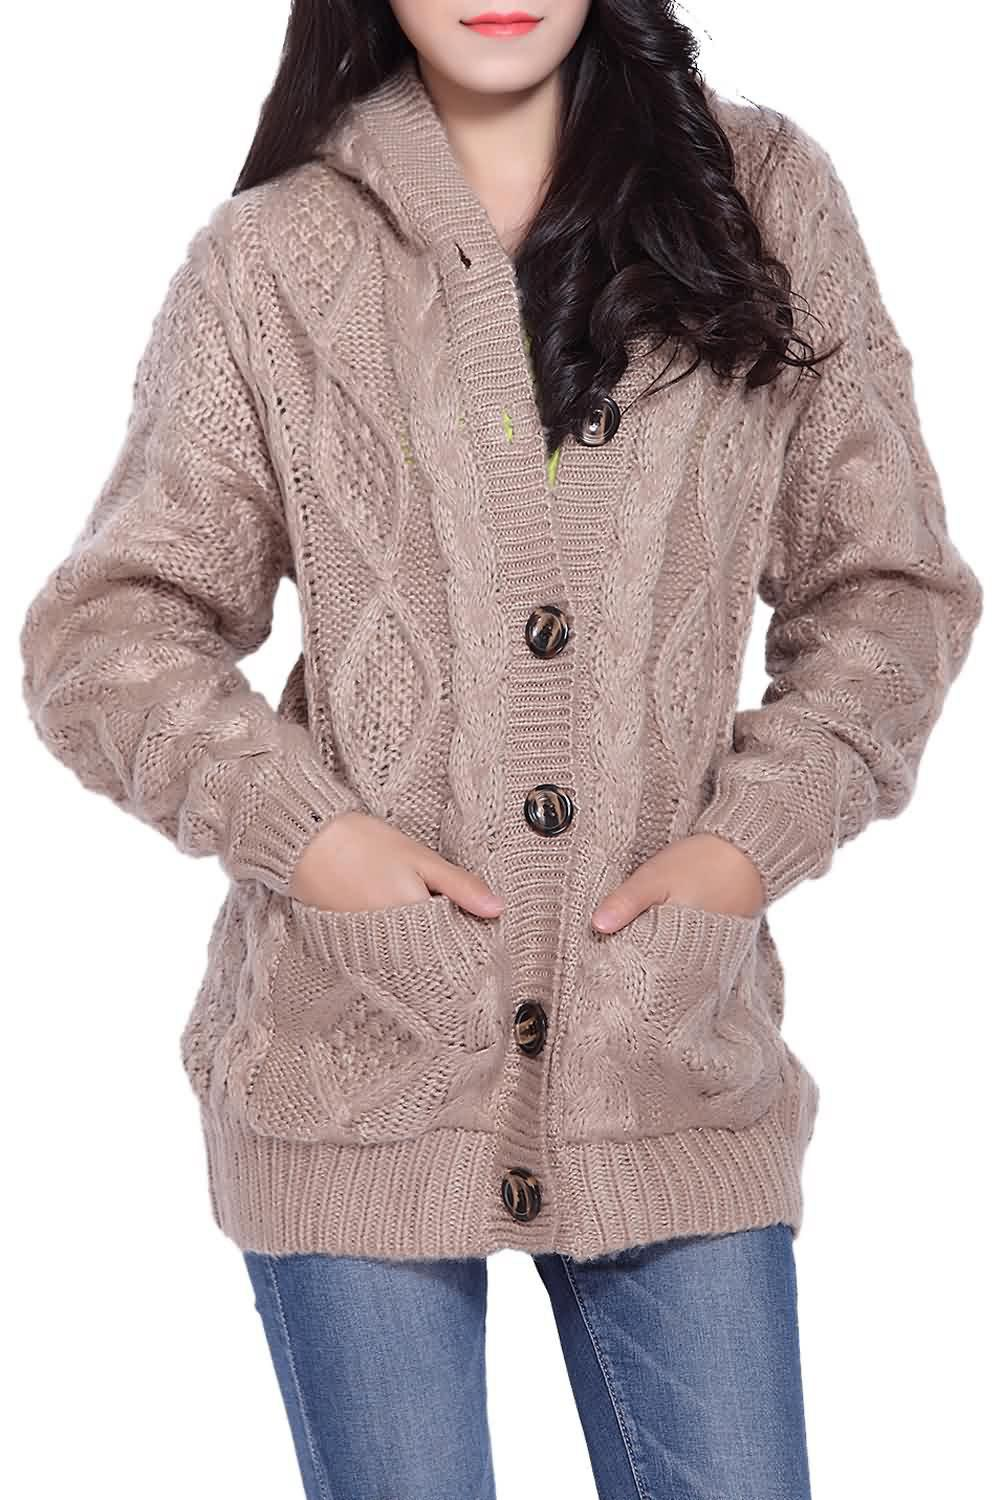 Cable Knit Hooded CardiganWOMEN<br><br>Size: ONE SIZE; Color: KHAKI; Type: Cardigans; Material: Acrylic; Sleeve Length: Full; Collar: Hooded; Style: Fashion; Pattern Type: Solid; Weight: 0.839kg; Package Contents: 1 x Cardigan;